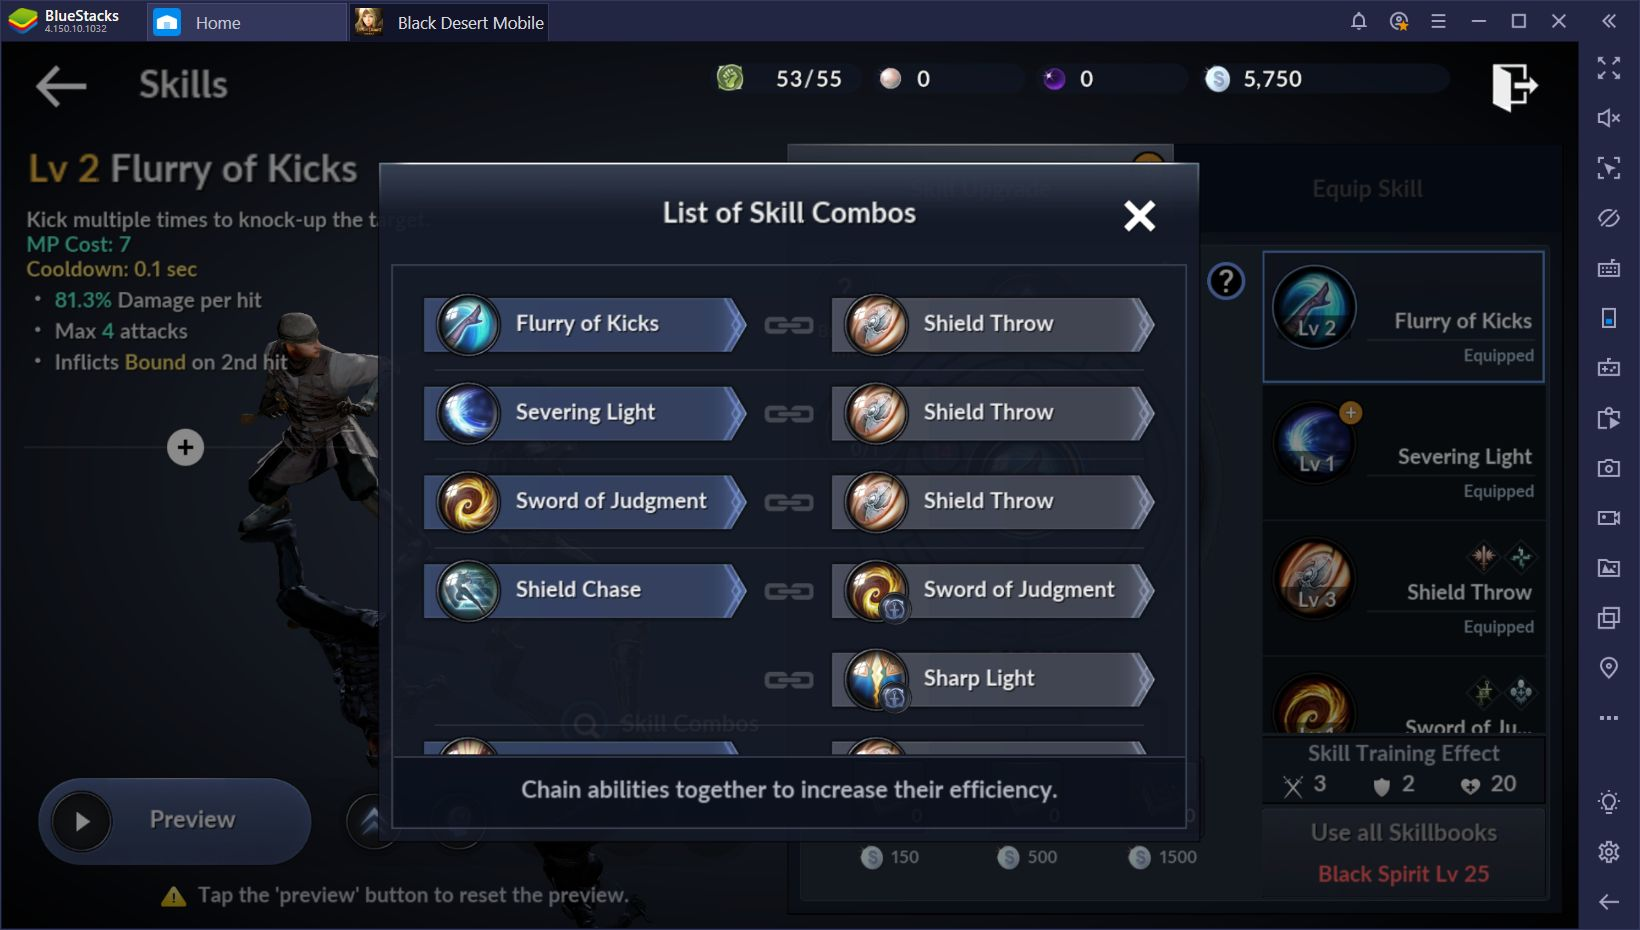 BlueStacks Guide for Black Desert Mobile - How to Unleash the Full Potential of This MMORPG